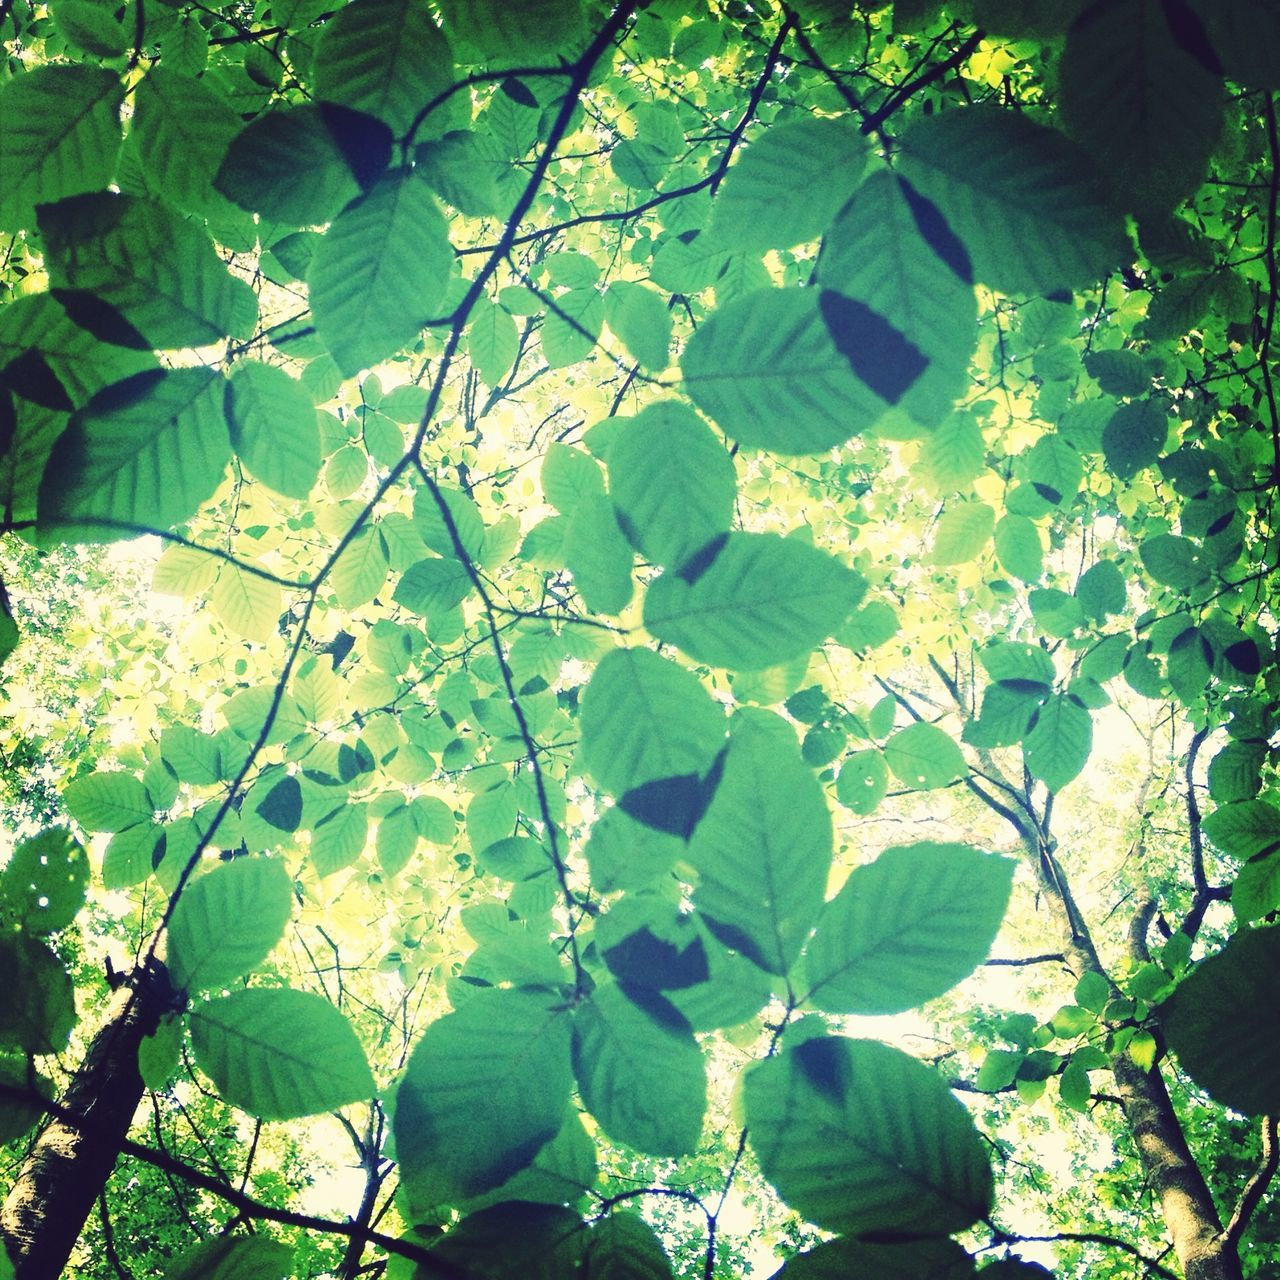 leaf, growth, green color, nature, plant, outdoors, day, tree, sunlight, beauty in nature, freshness, branch, no people, close-up